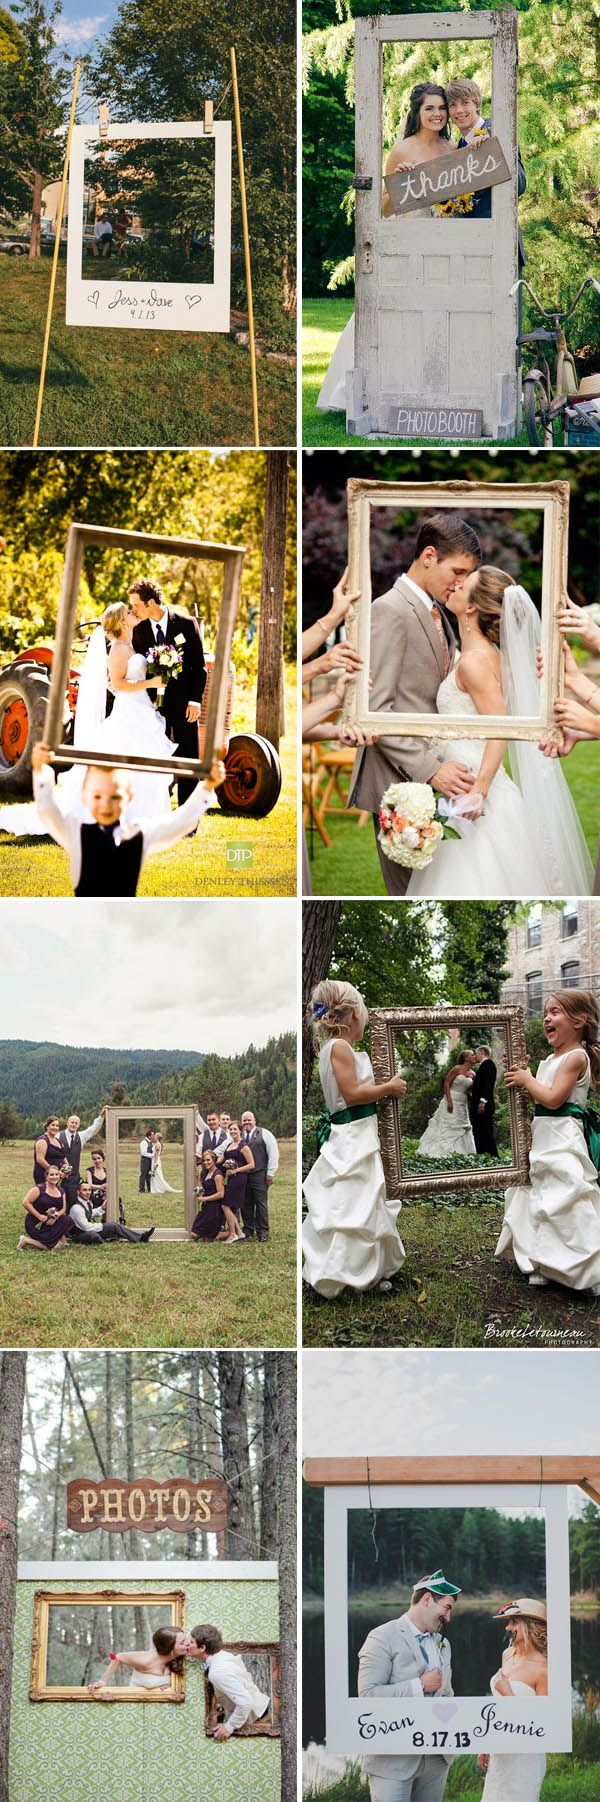 photo frame booths are not just for weddings. They are an easy DIY to add fun to any event!